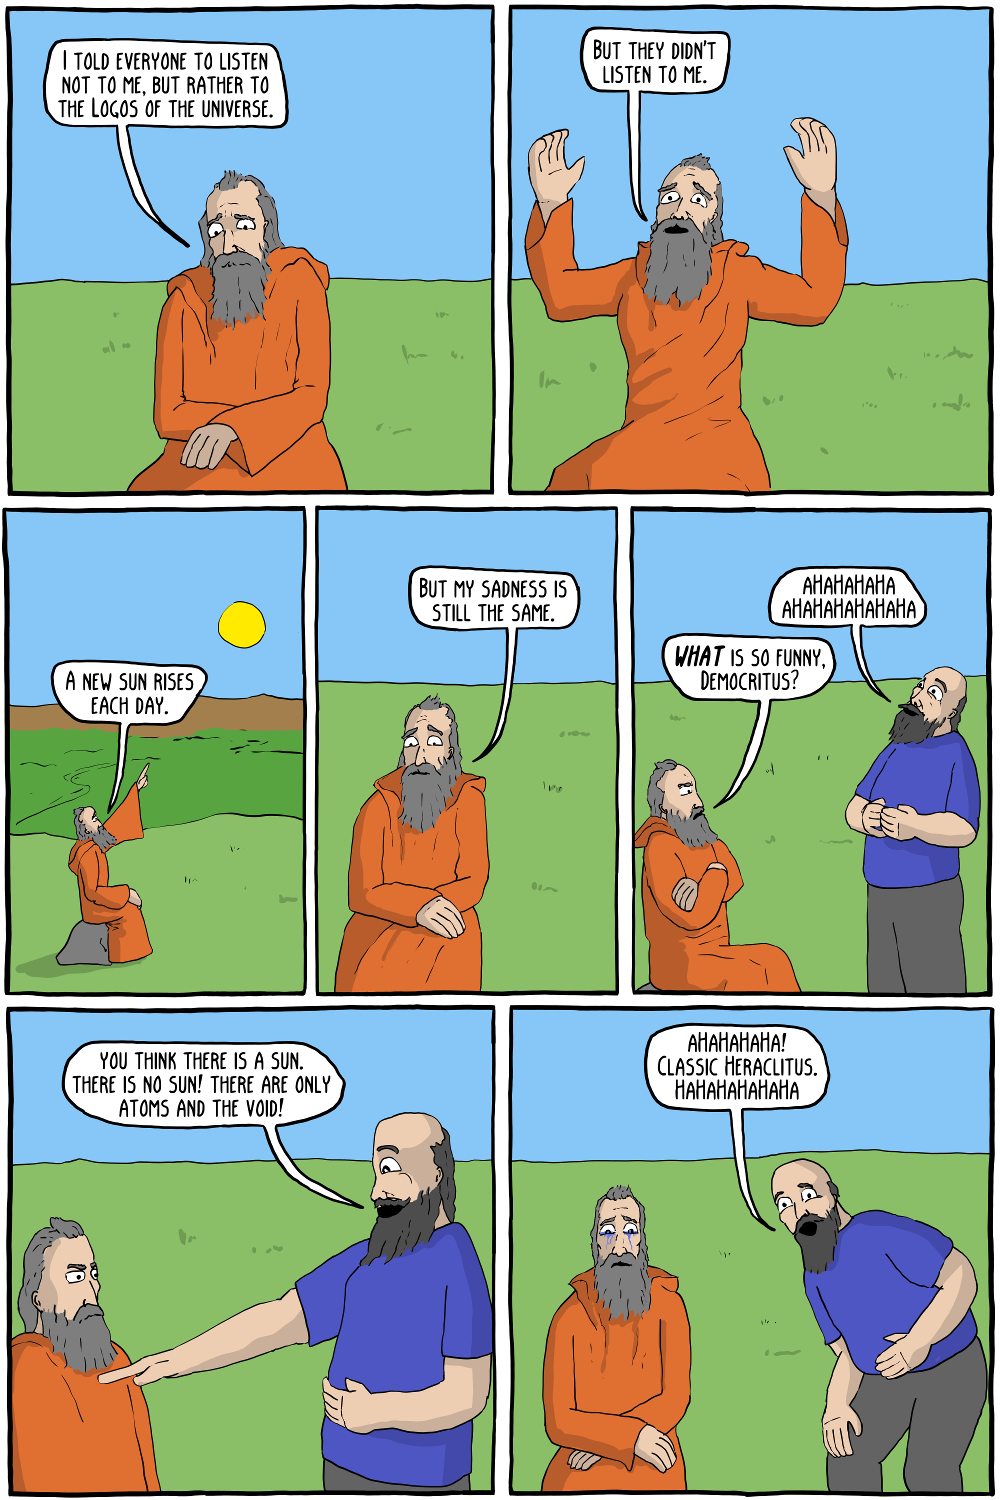 If you didn't want to read two pages of weird Heraclitus jokes, then you are on the wrong website